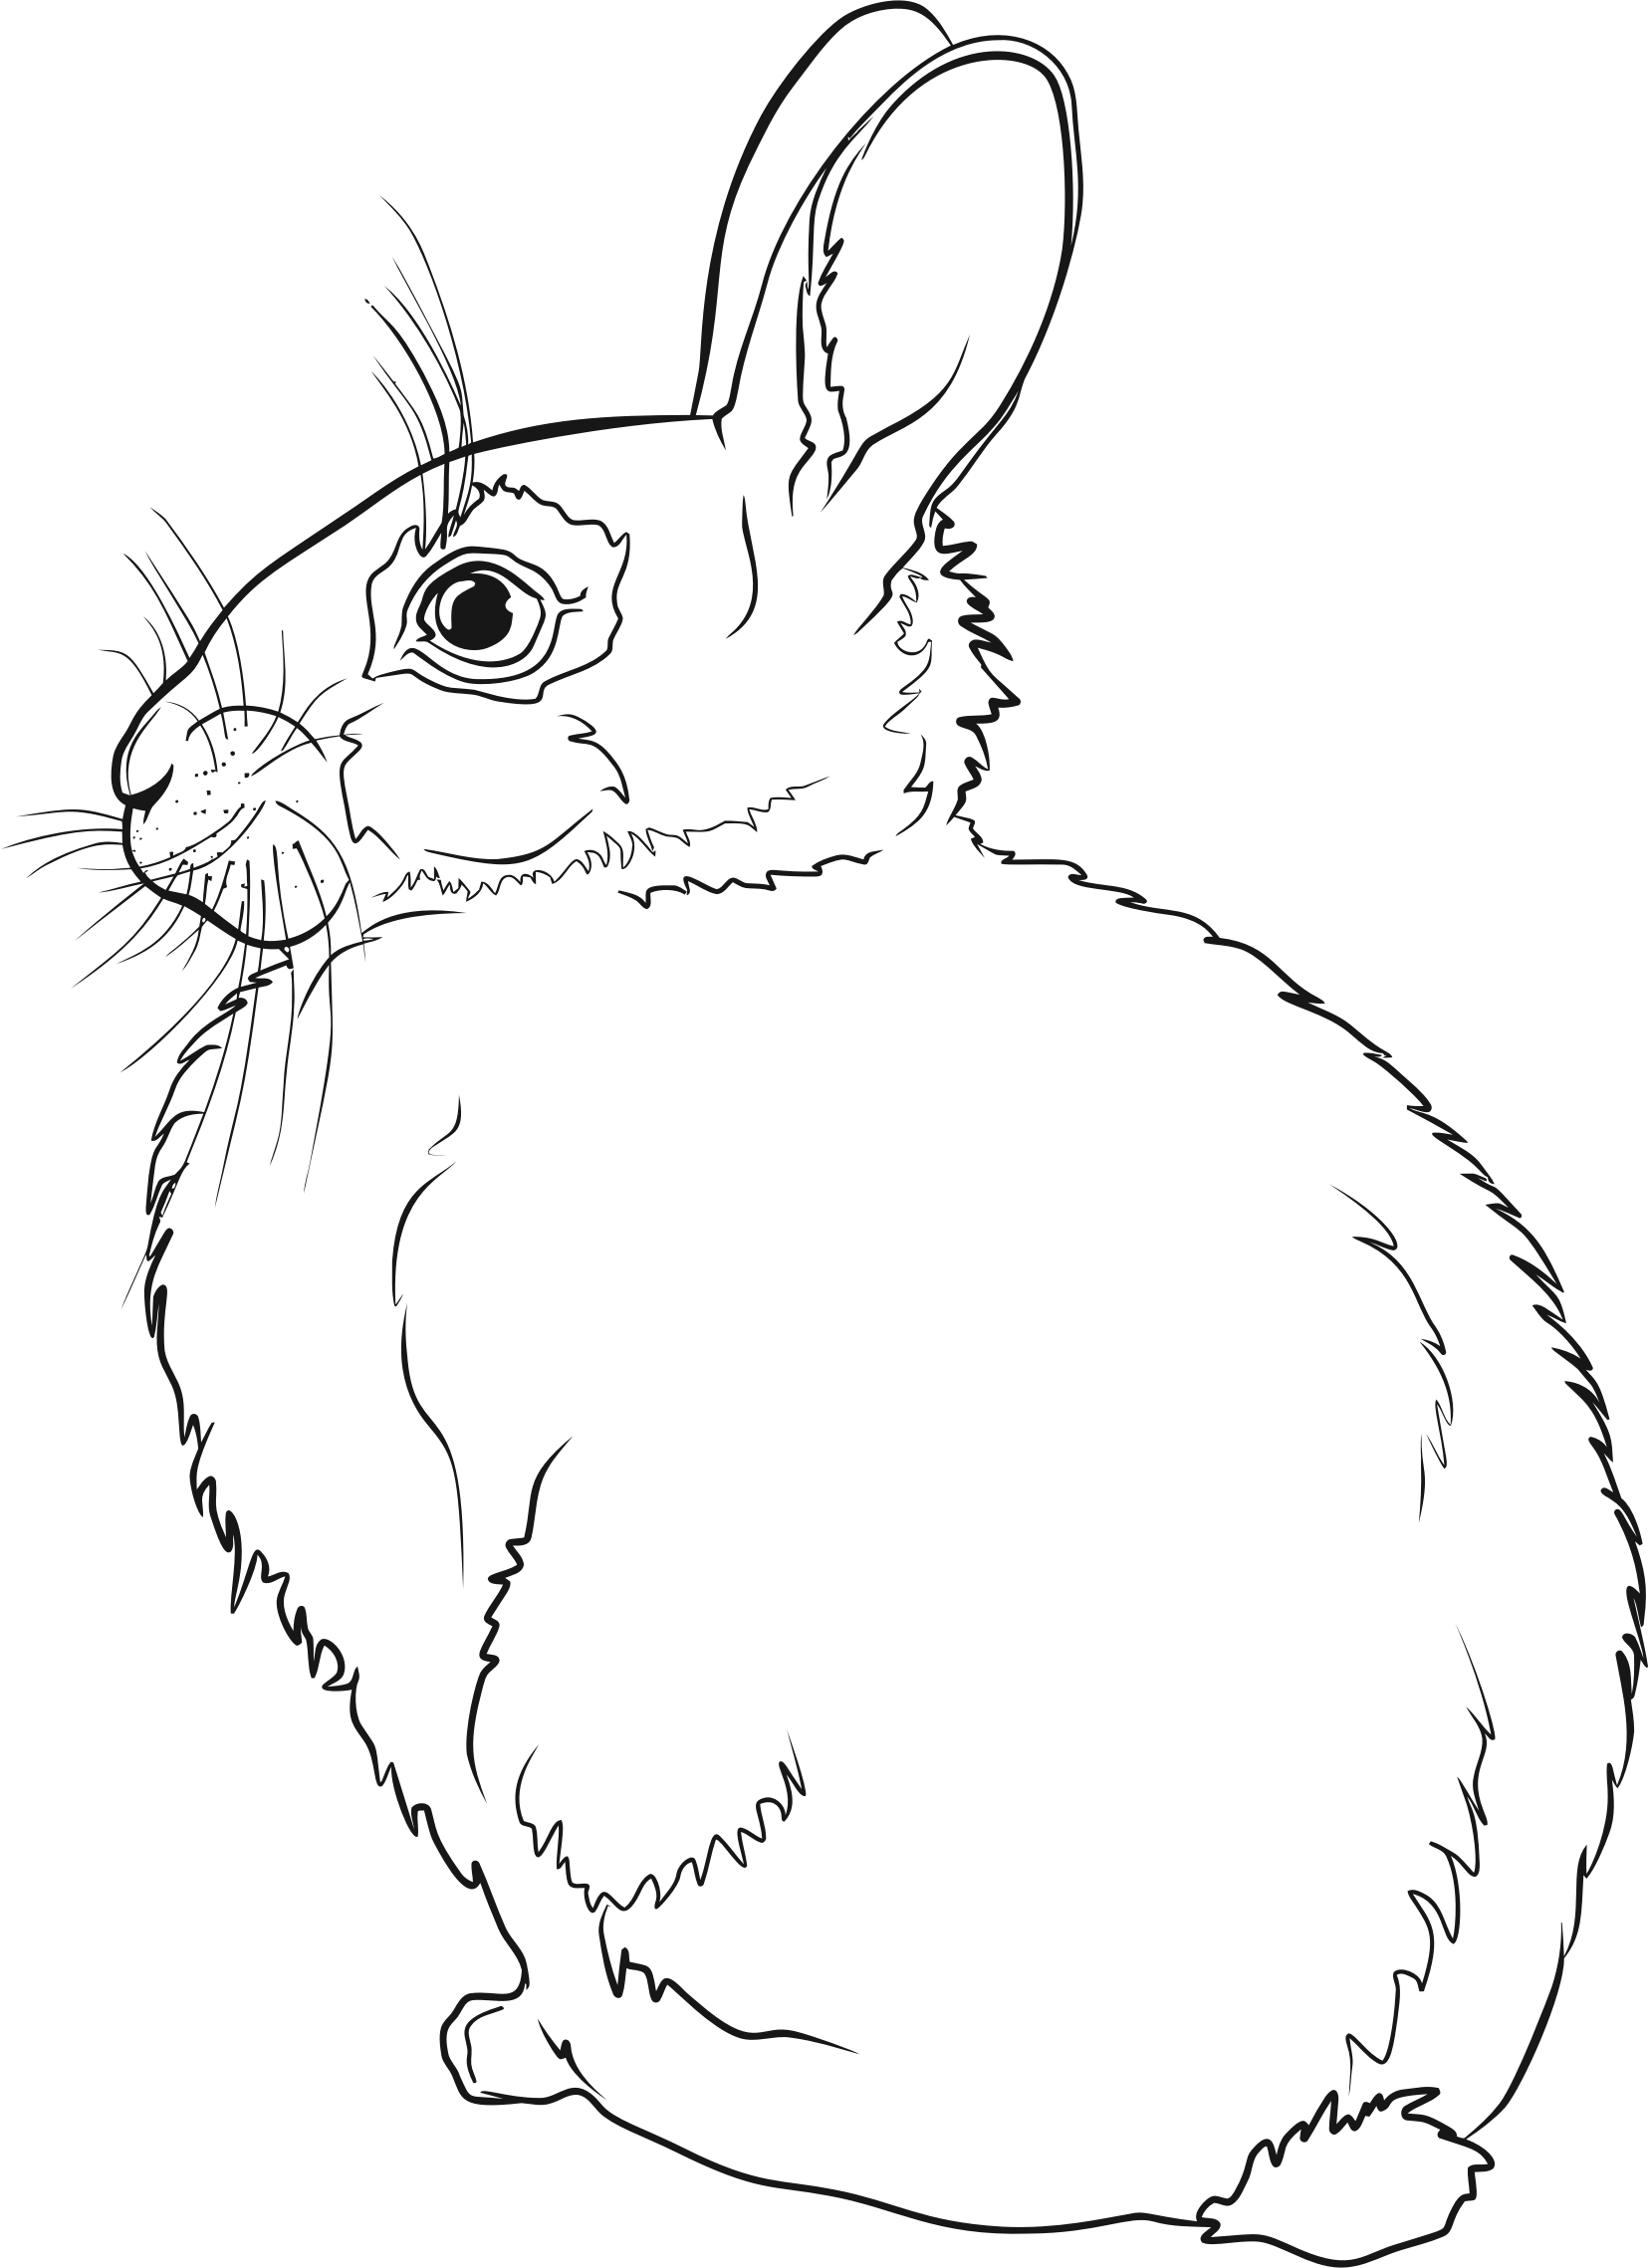 Clipart rabbit line art. Hare drawing at getdrawings